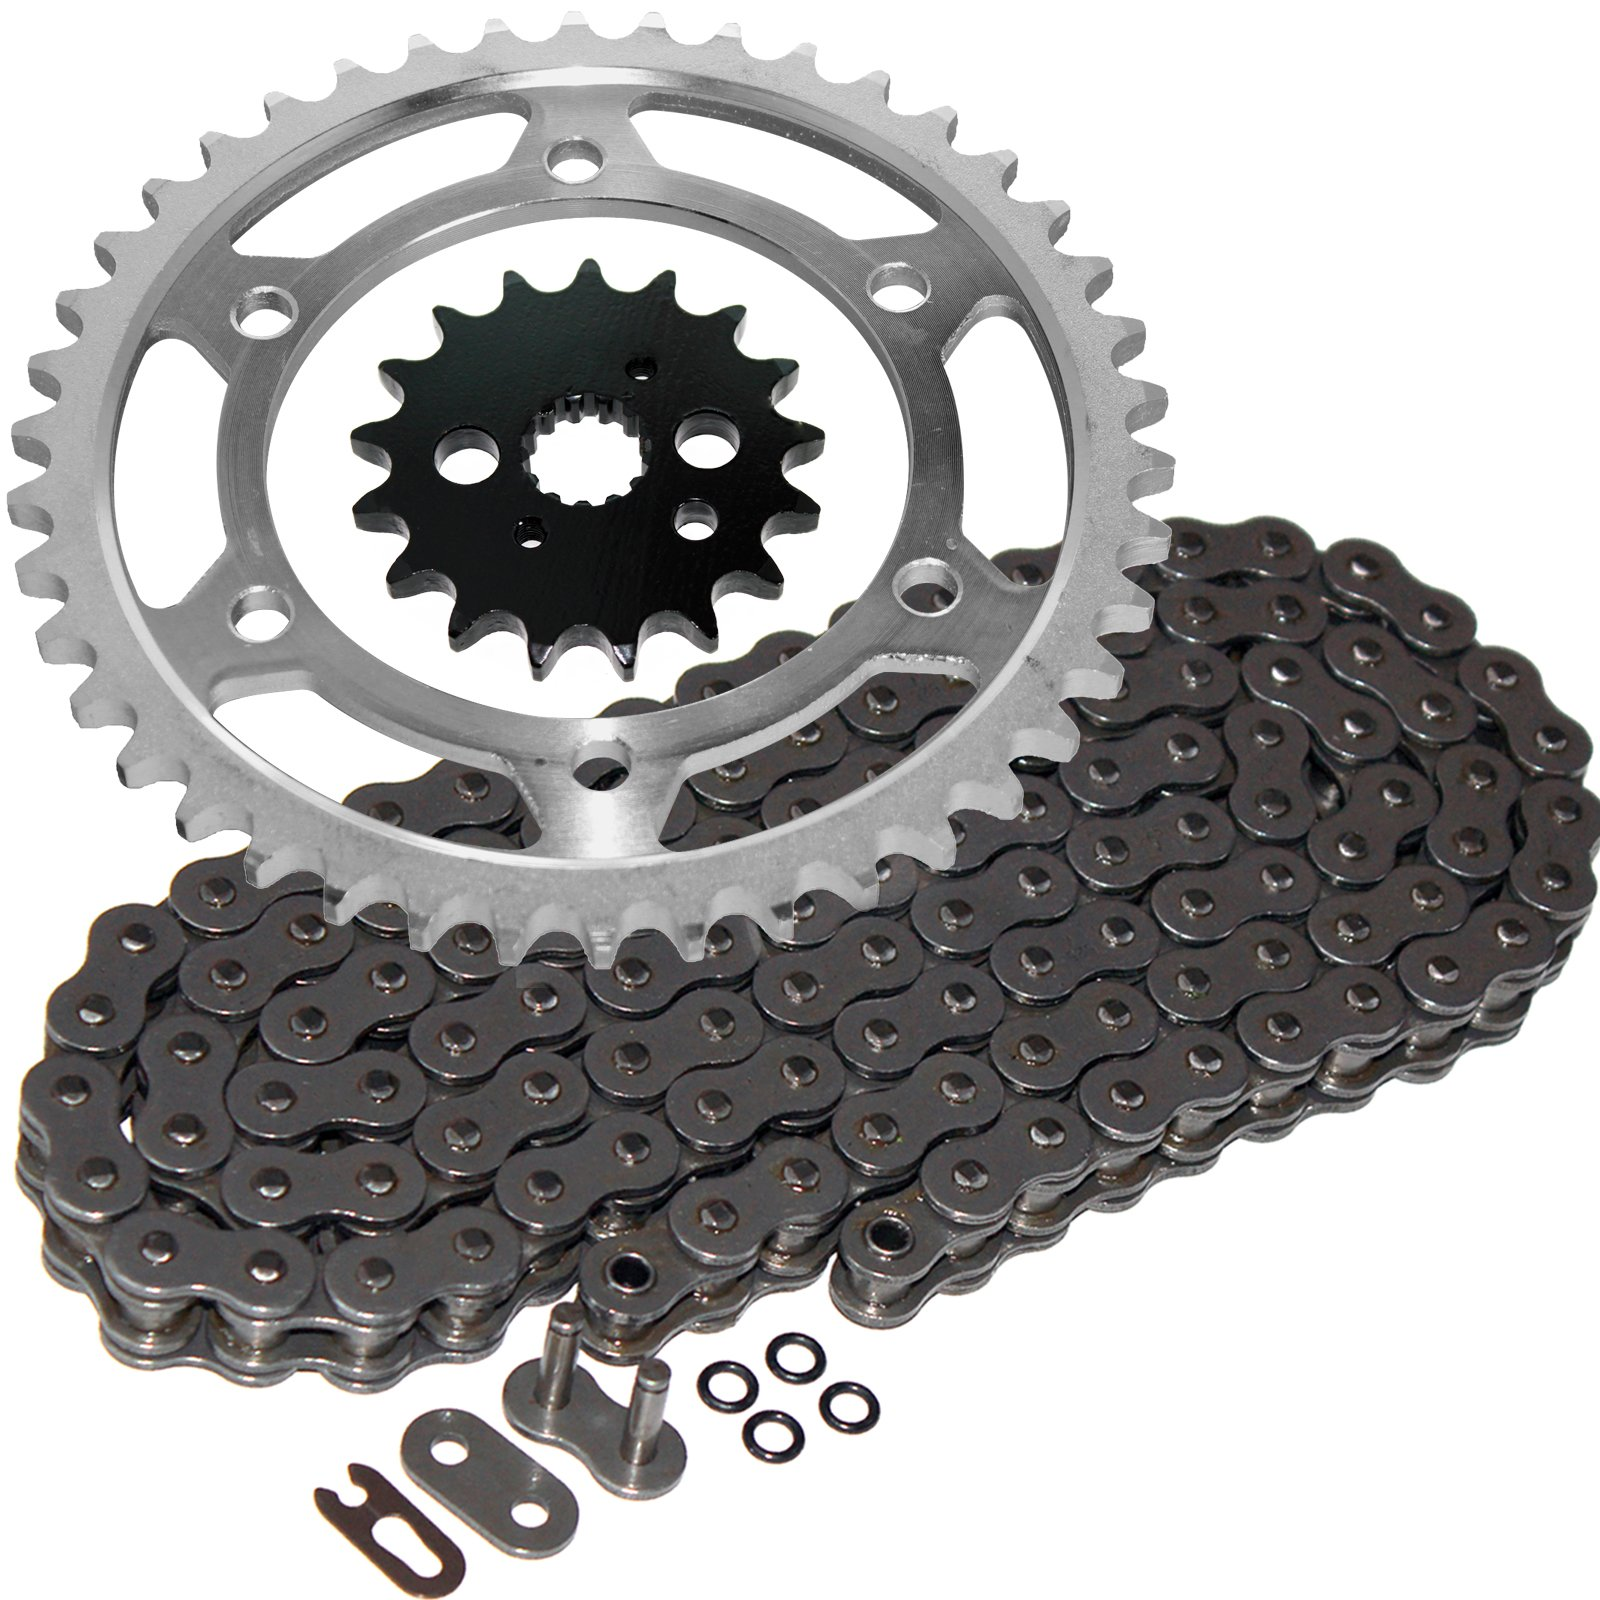 Caltric Steel O-Ring Drive Chain & Sprockets Kit Fits KAWASAKI VN800A VN-800A Vulcan 800 1997-2005 by Caltric (Image #1)